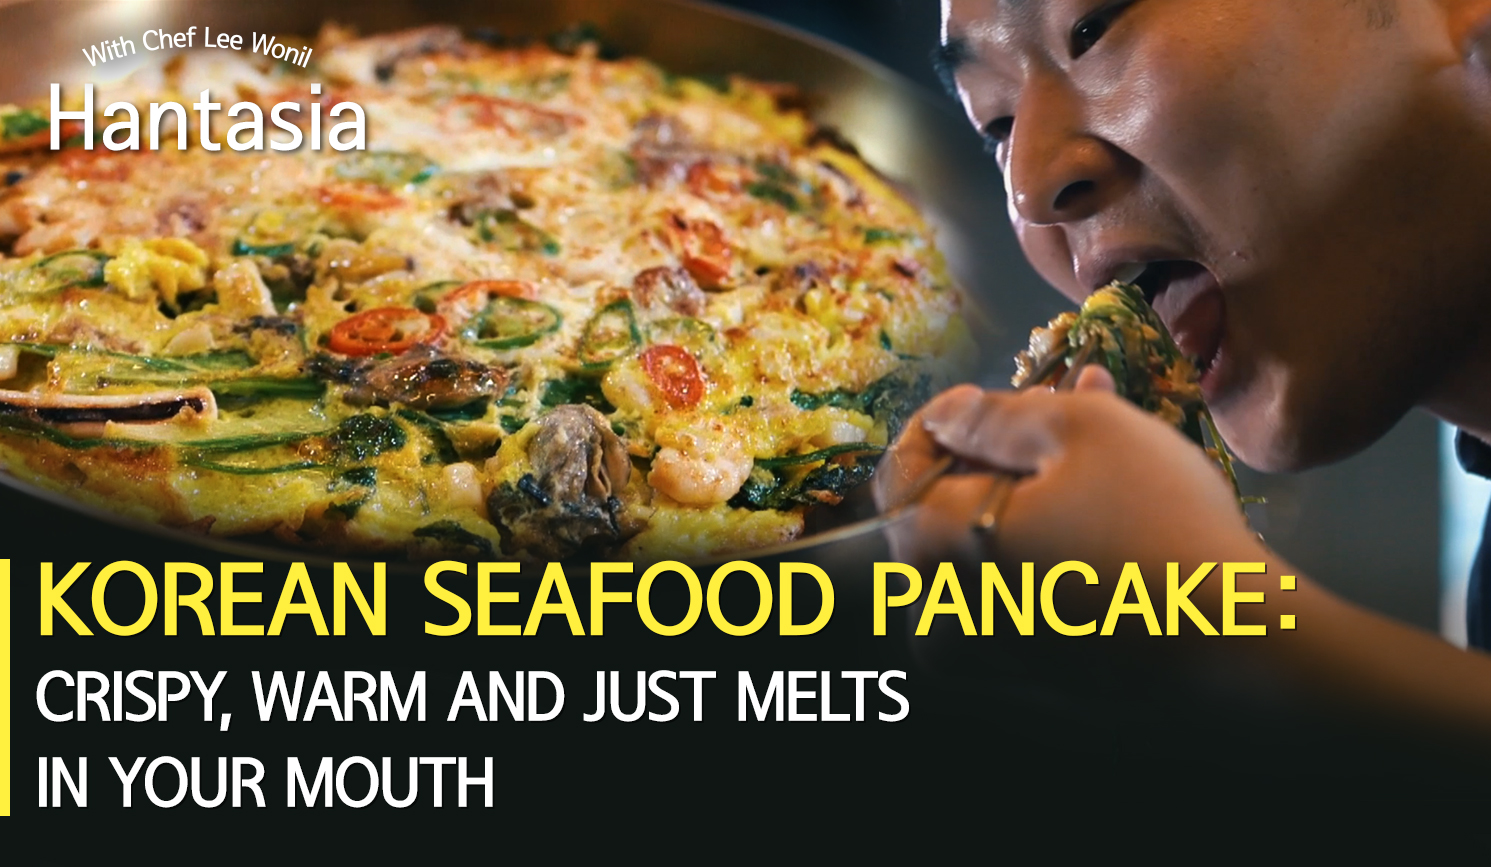 [Hantasia]Korean seafood pancake: crispy, warm and just melts in your mouth